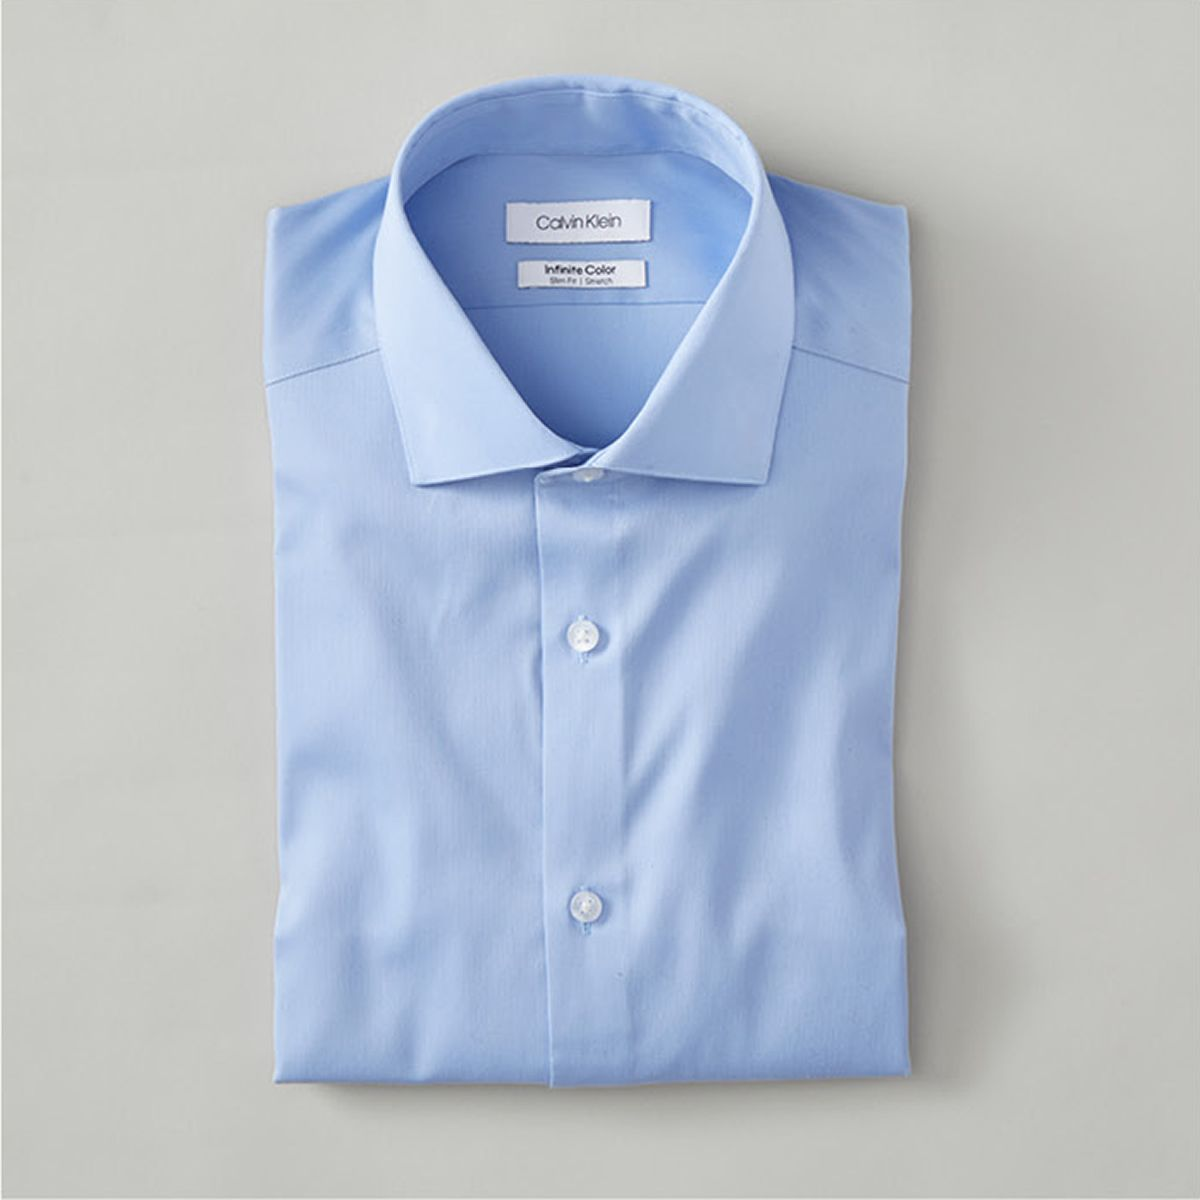 17cfc04b59878 Men's Shirts - Macy's